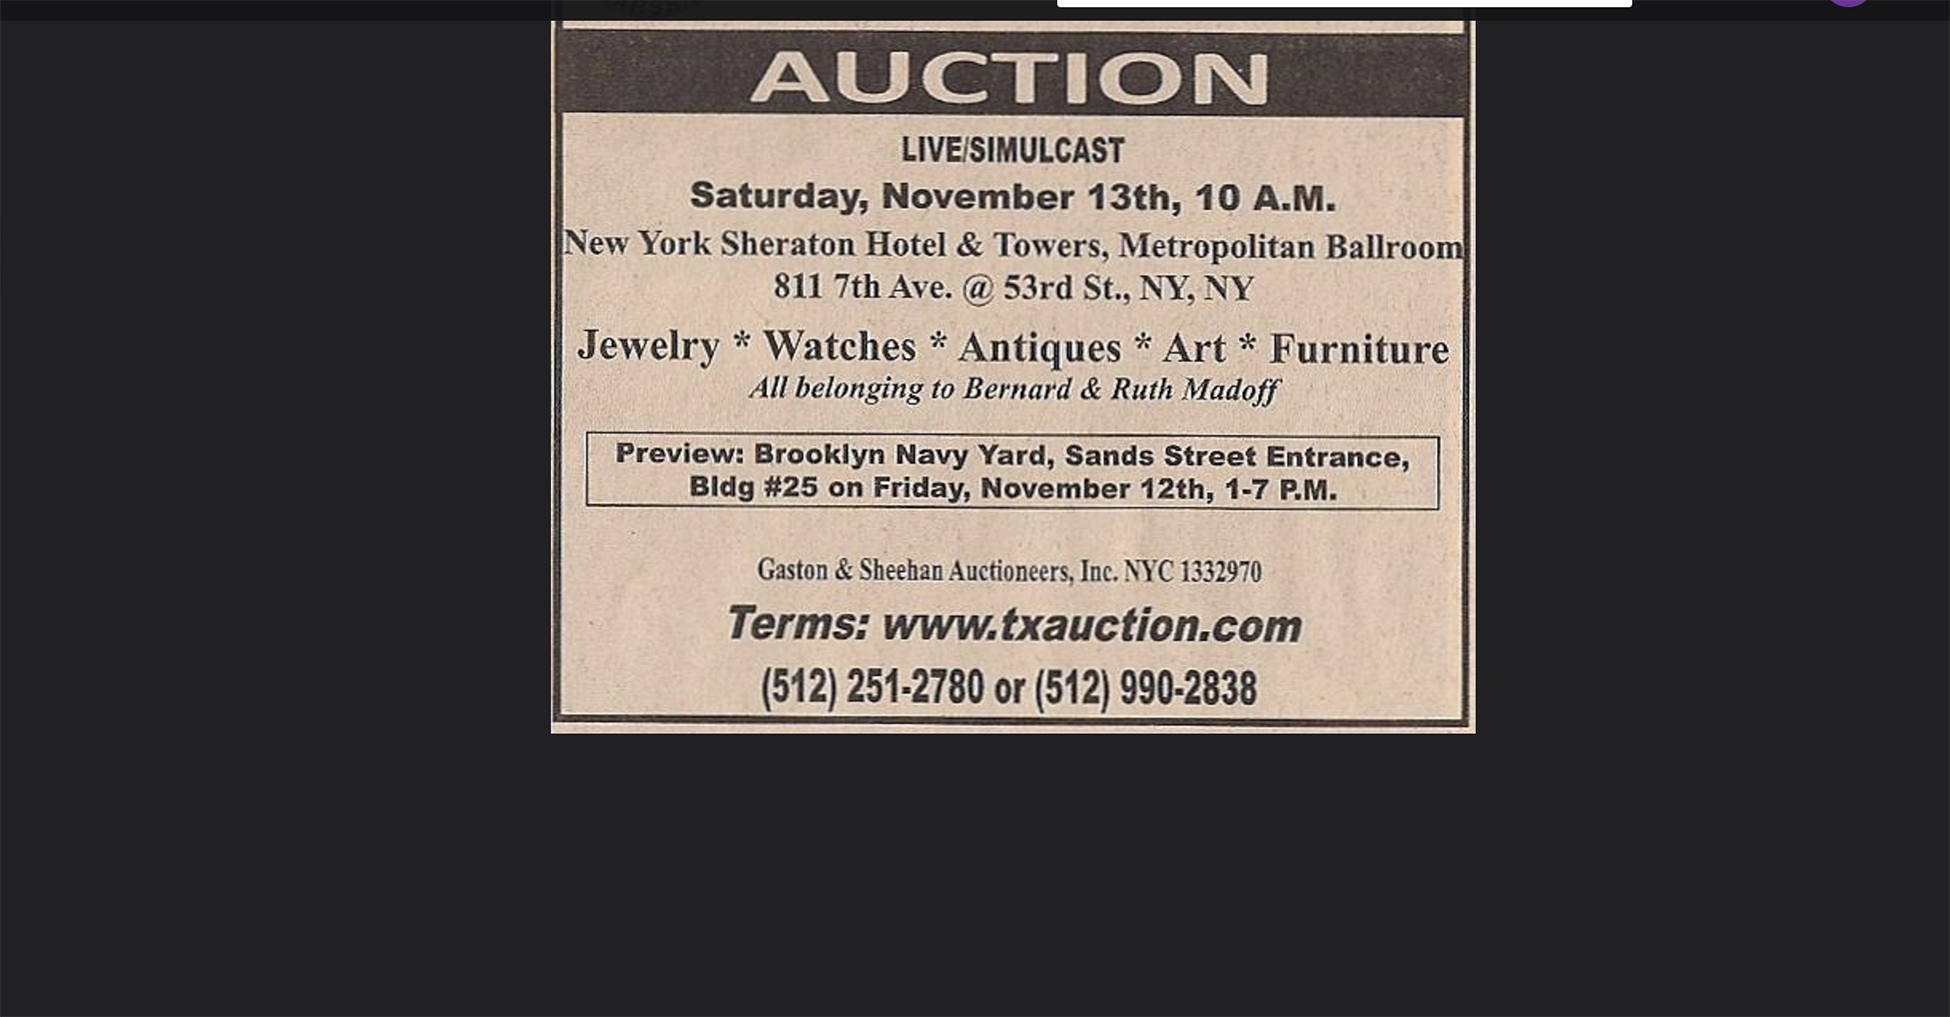 The posting reads as follows. Auction. Live, simulcast. Saturday, November 13th 10 a m. New York Sheraton hotel and towers, metropolitan ballroom. Jewelry, watches, antiques, art, furniture, all belonging to Bernard and Ruth Madoff. Terms, wwwdottxauctiondotcom.